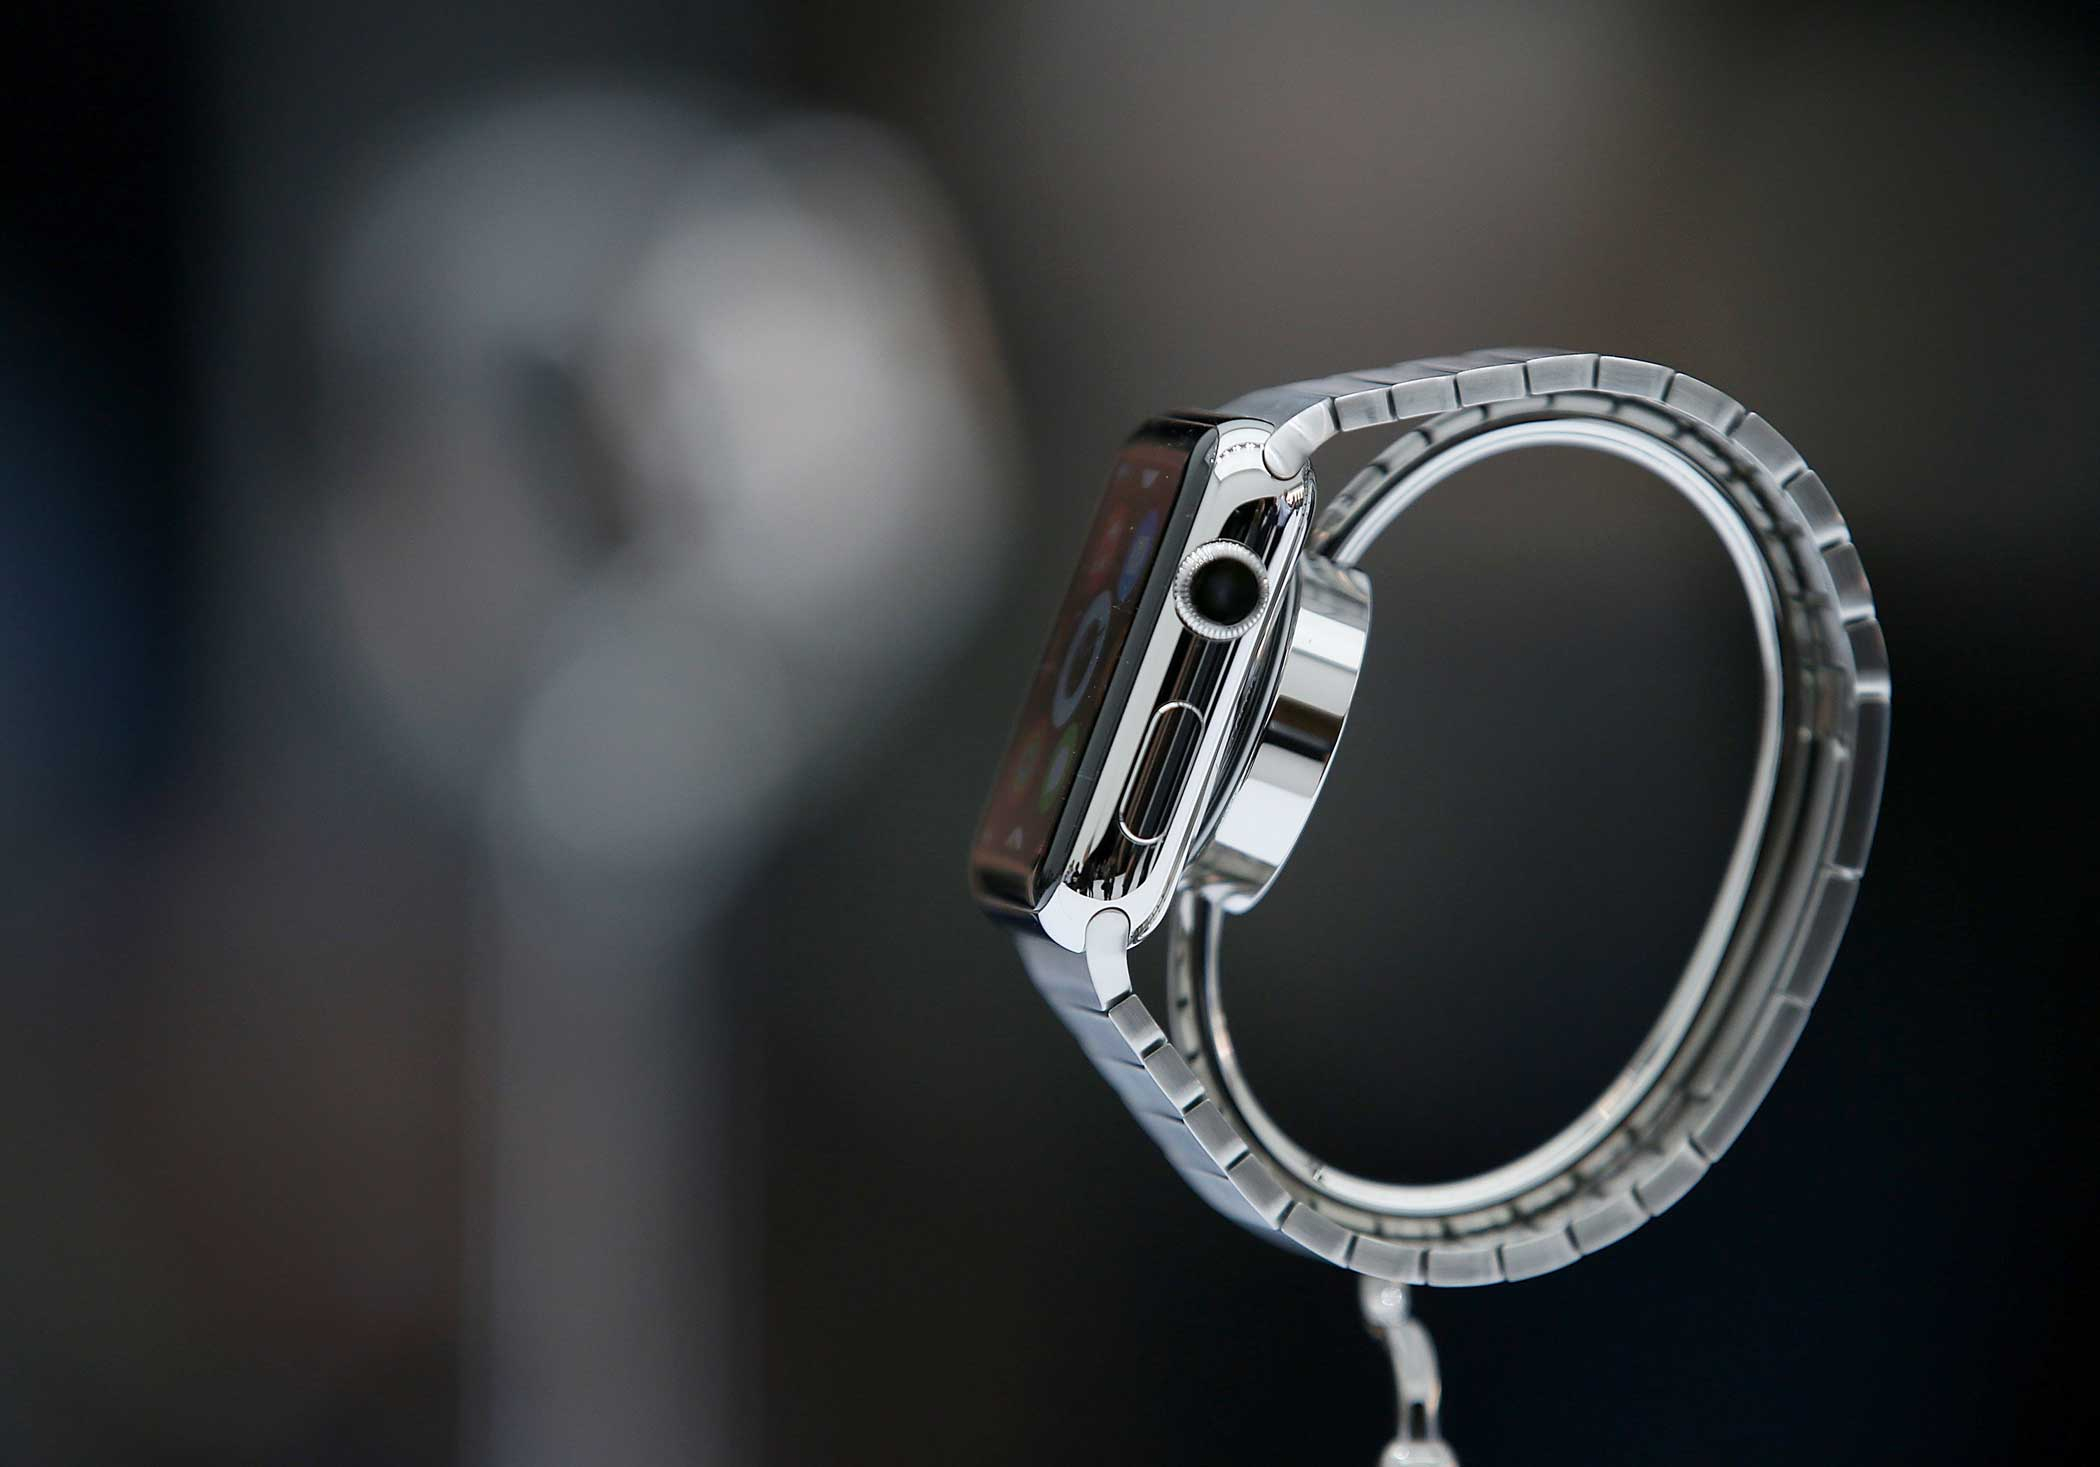 The Watch will come with many customizable bands that slip on and click in place at the top and bottom of the device's body.